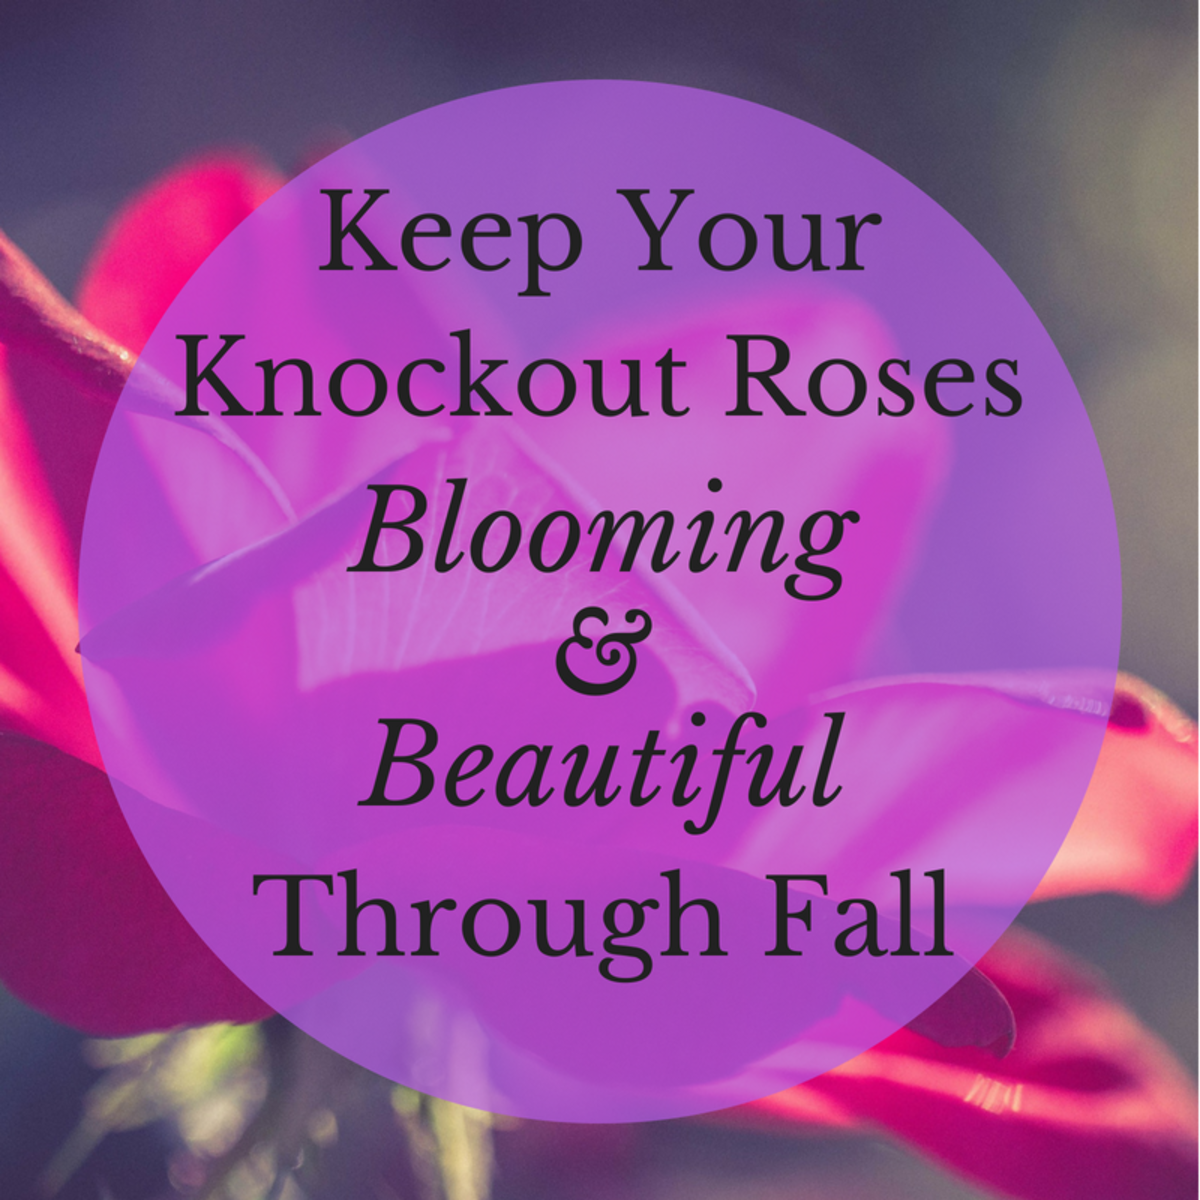 How to Keep Knockout Roses Blooming Through Fall